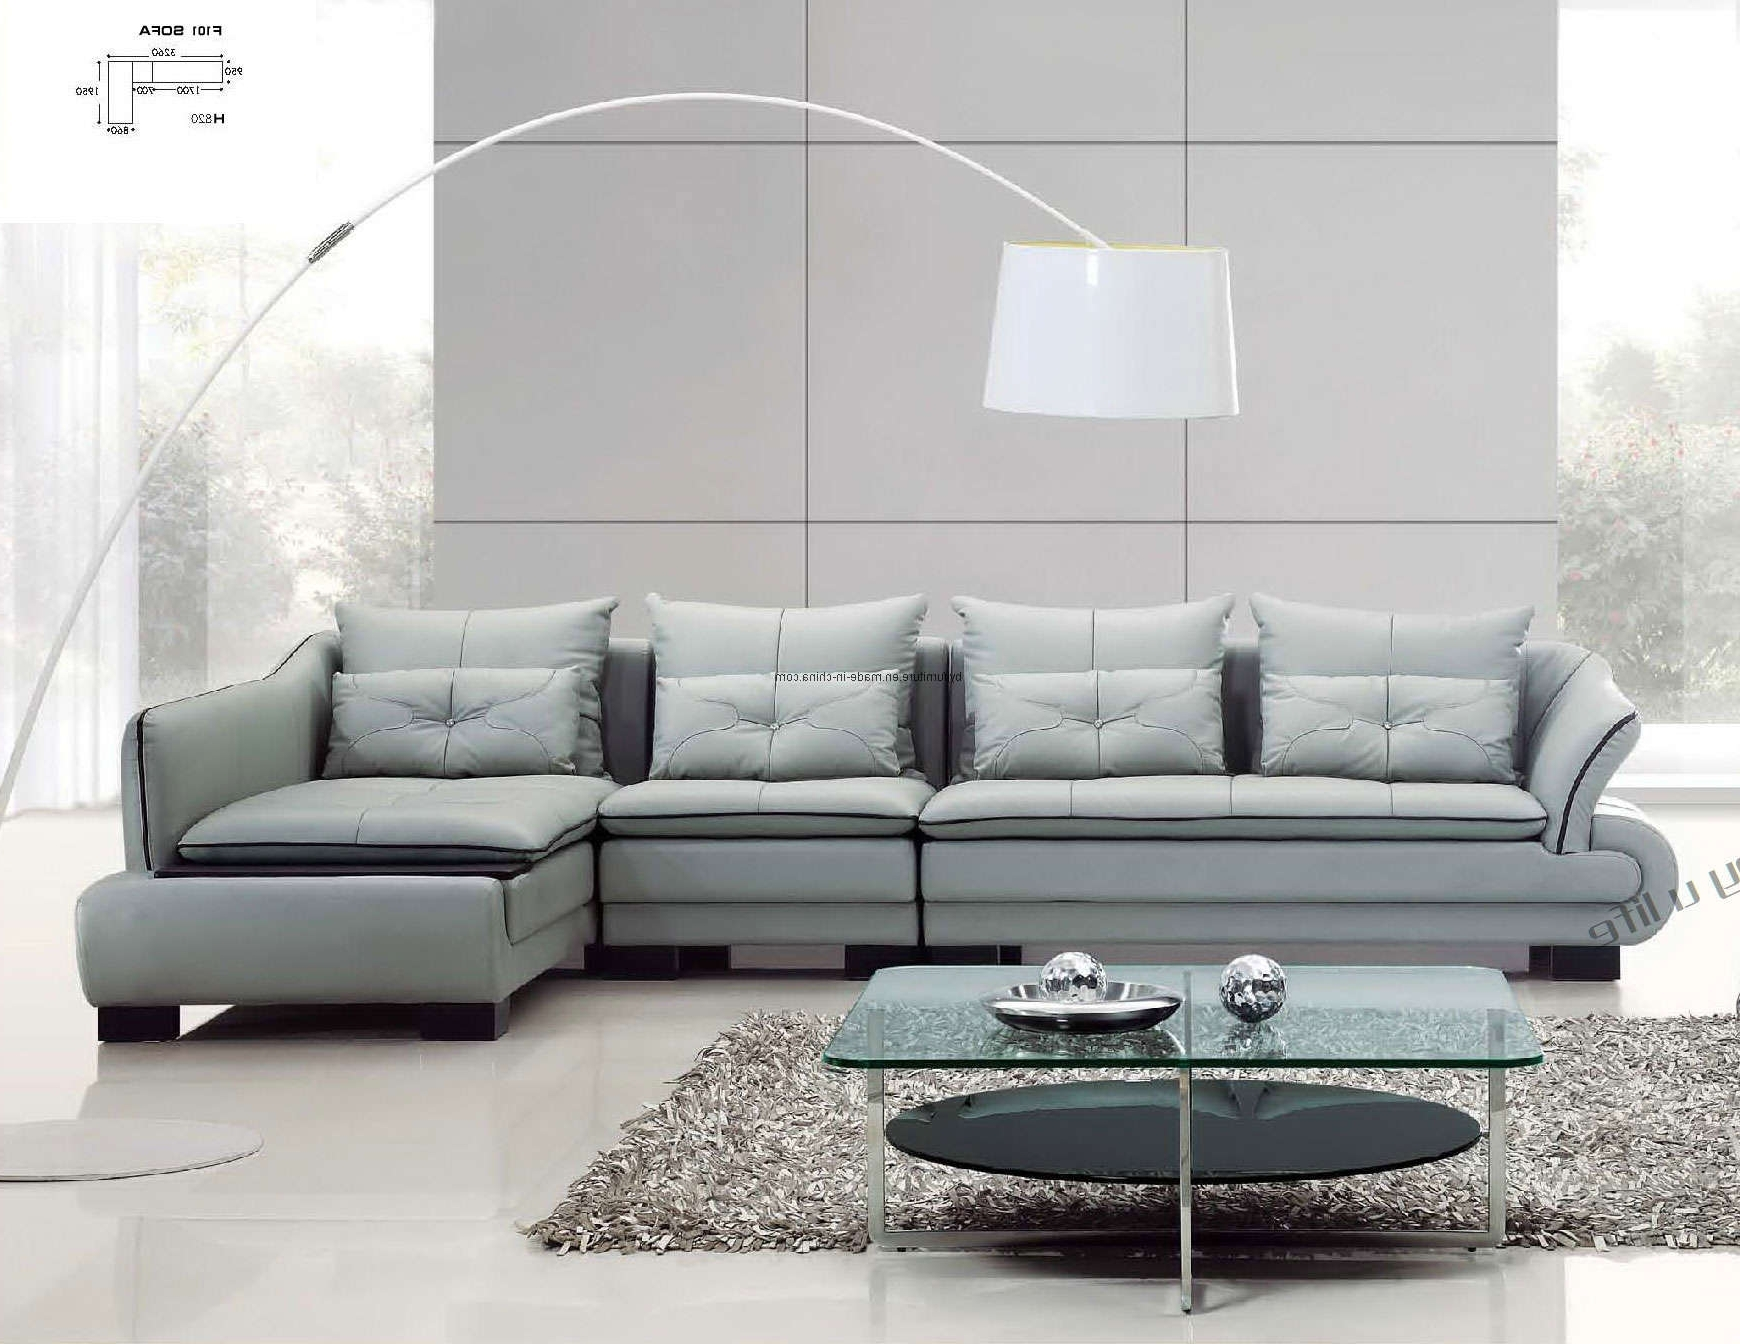 Contemporary Sofa Chairs Inside Newest Sofa: Remarkable Contemporary Sofa Set Best Contemporary Sofas (View 5 of 20)